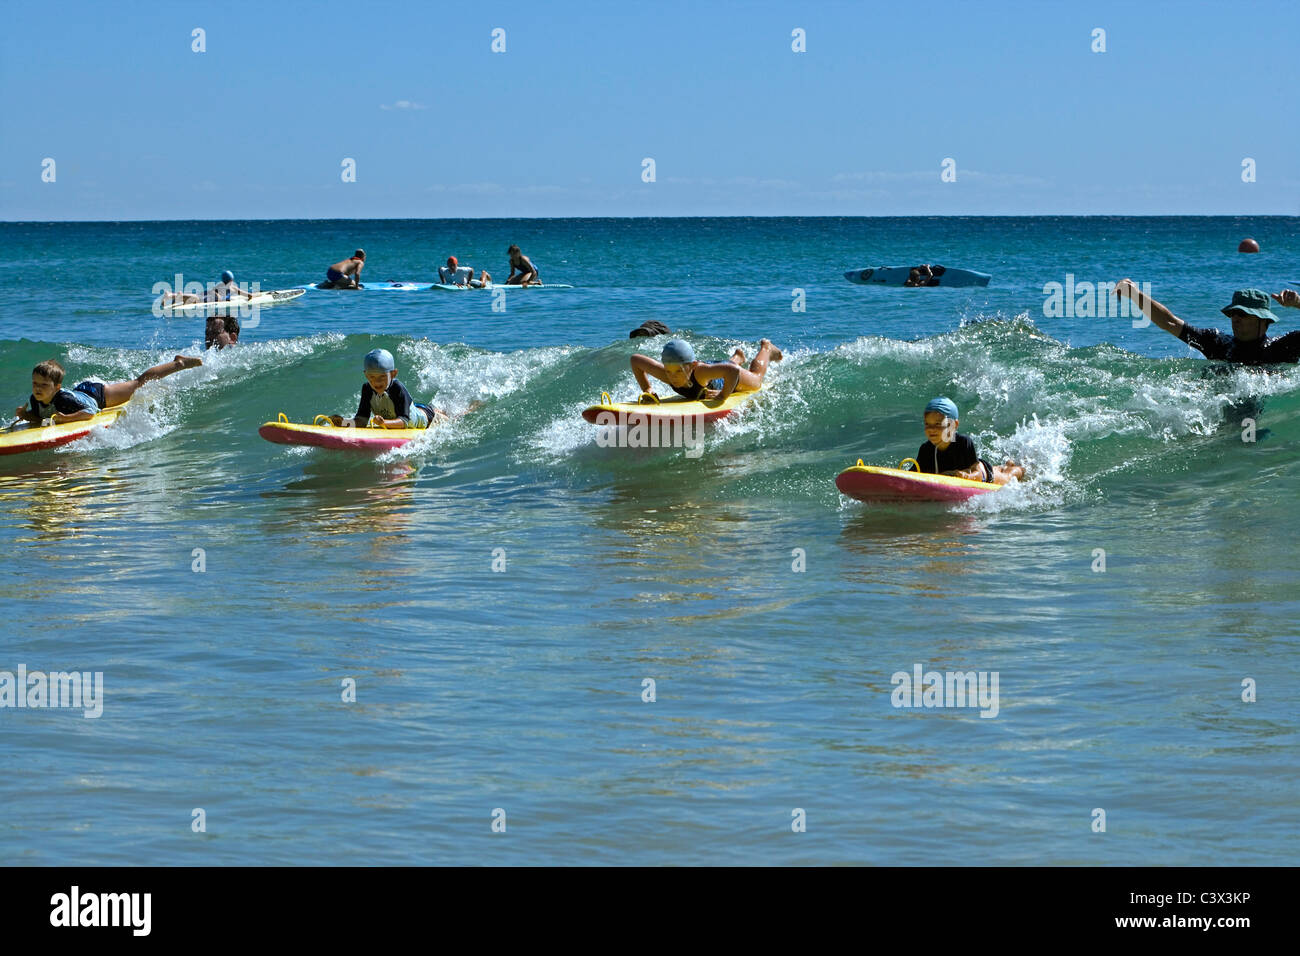 Australia, Sydney, Manly Beach. Weekly competition of young surfers on sunday morning. - Stock Image